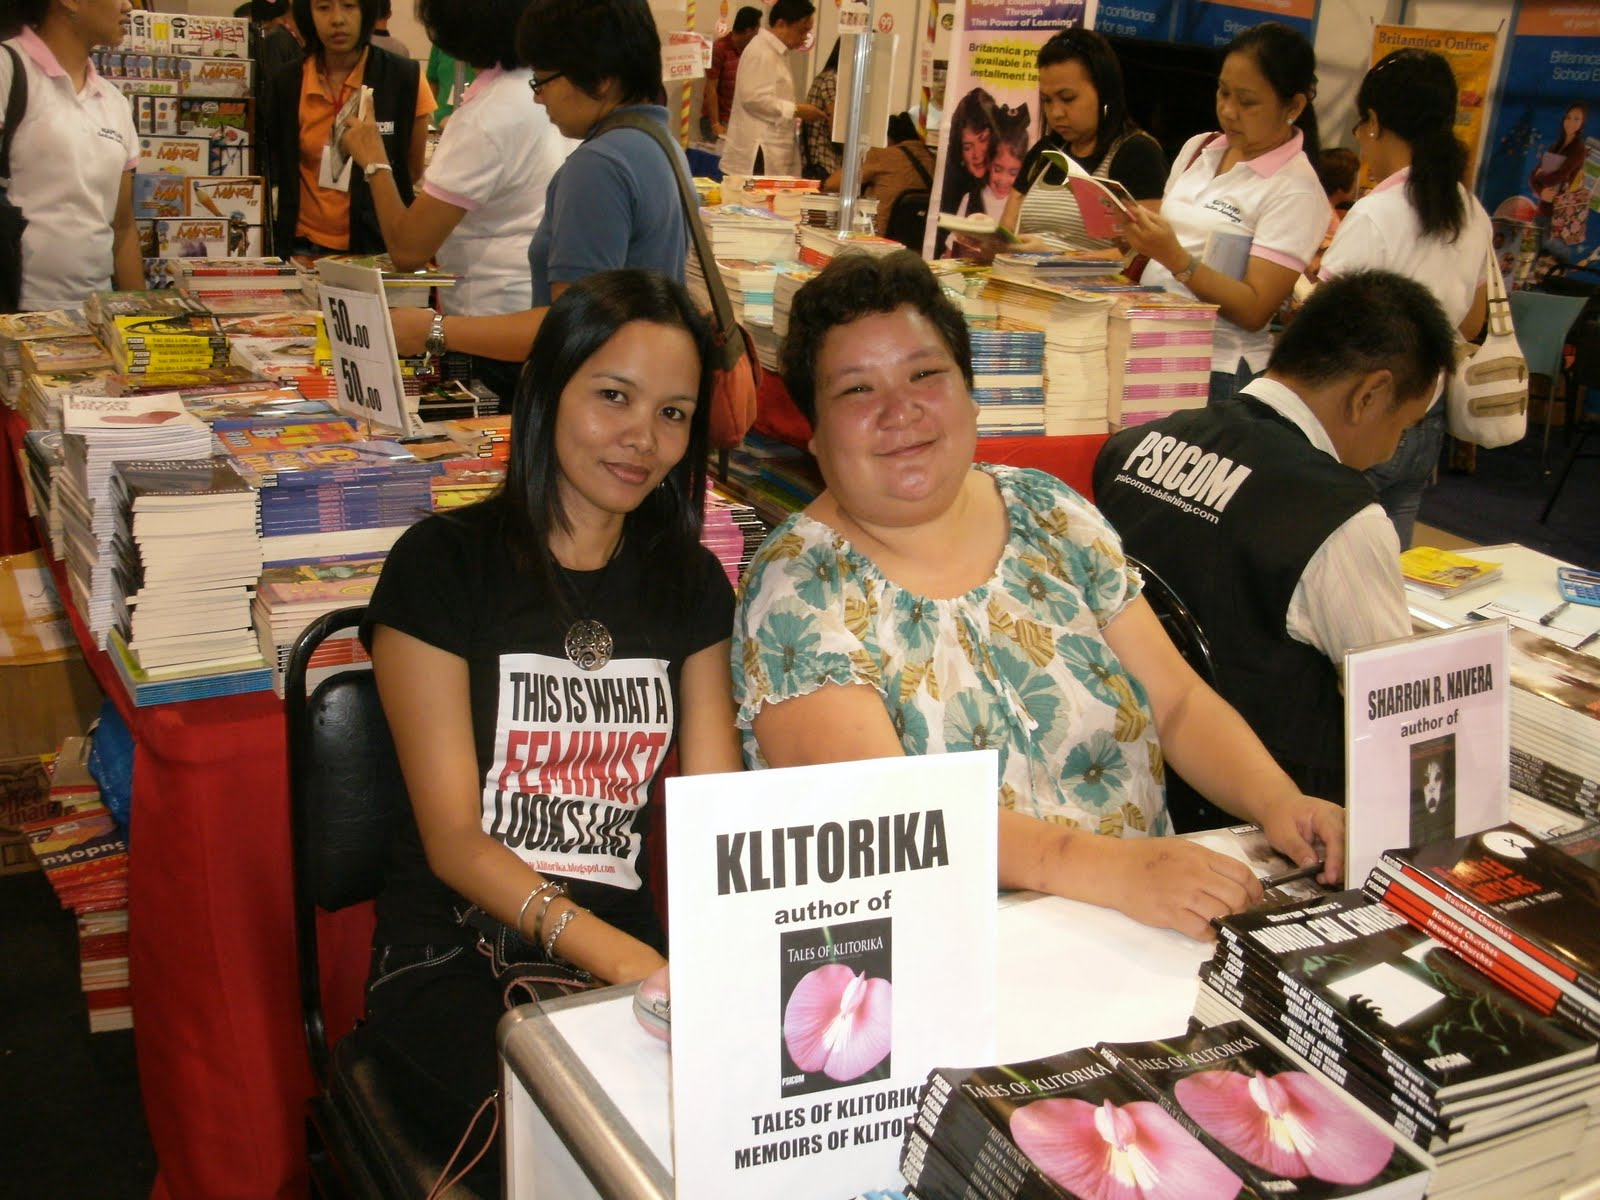 Pinoy Iyutan Stories http://www.haanhvu.com/photographqjvw/Pinoy-Pantasya-Stories-Kantutan.html